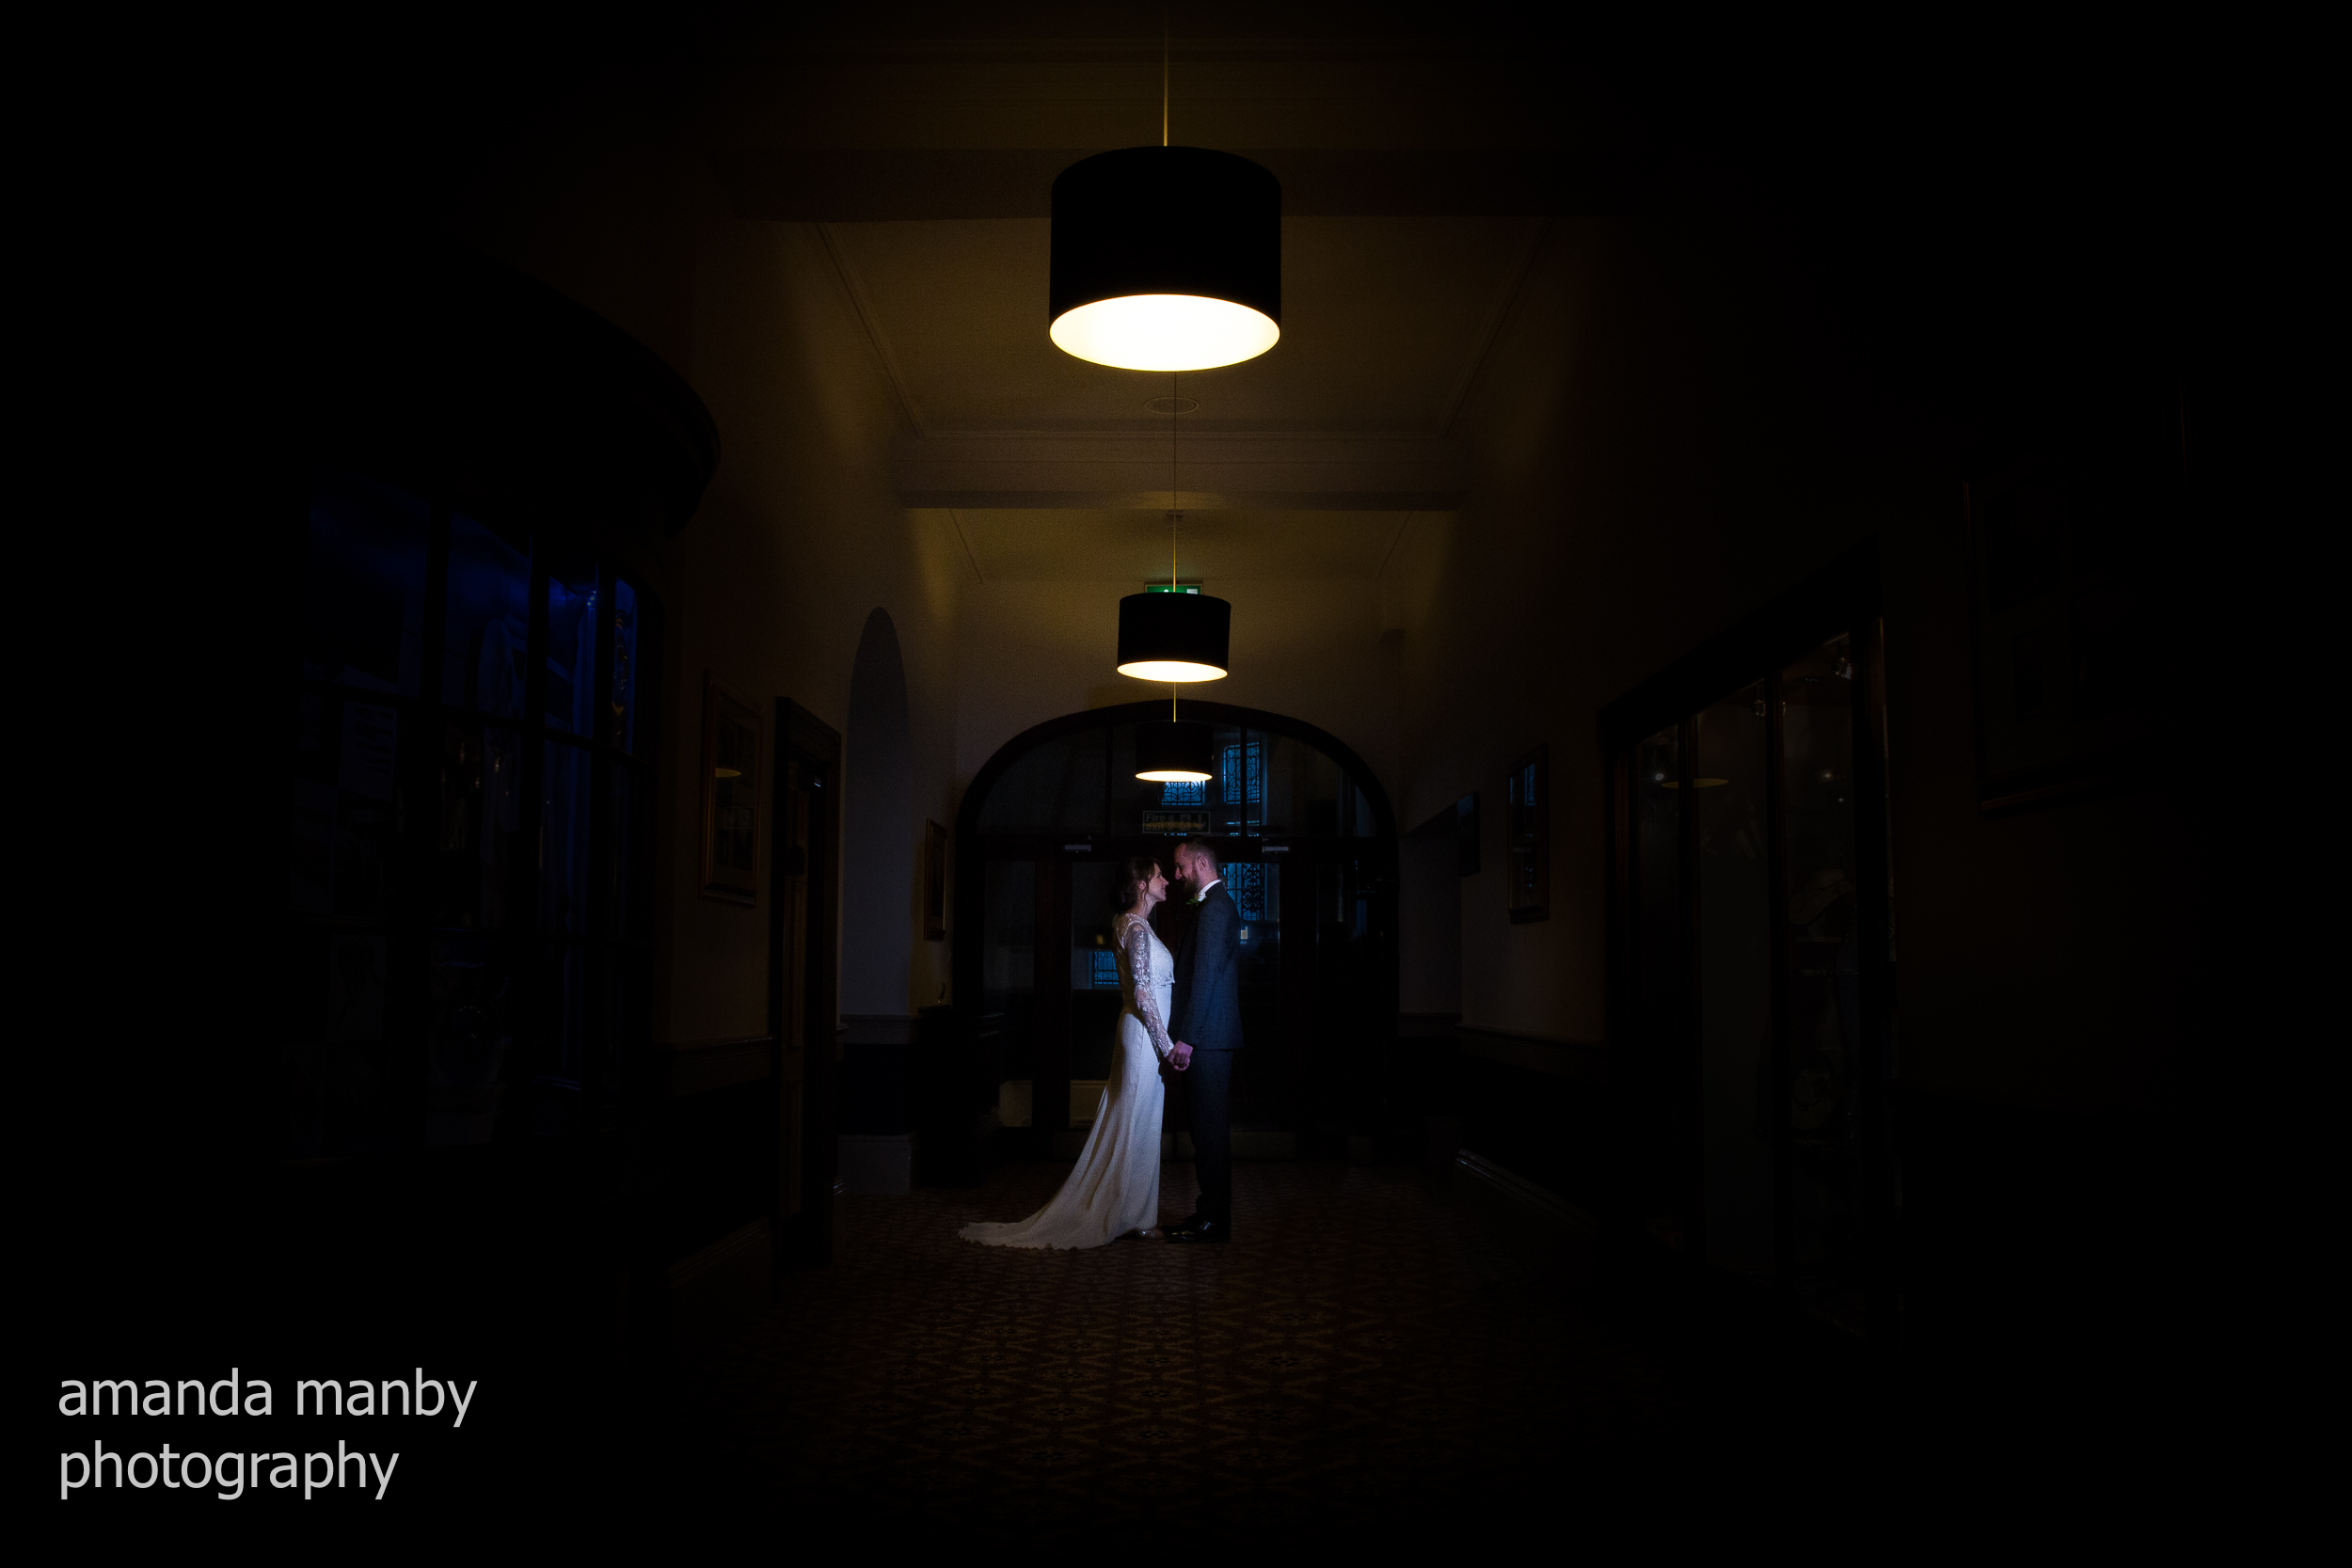 Crown hotel harrogate wedding photography